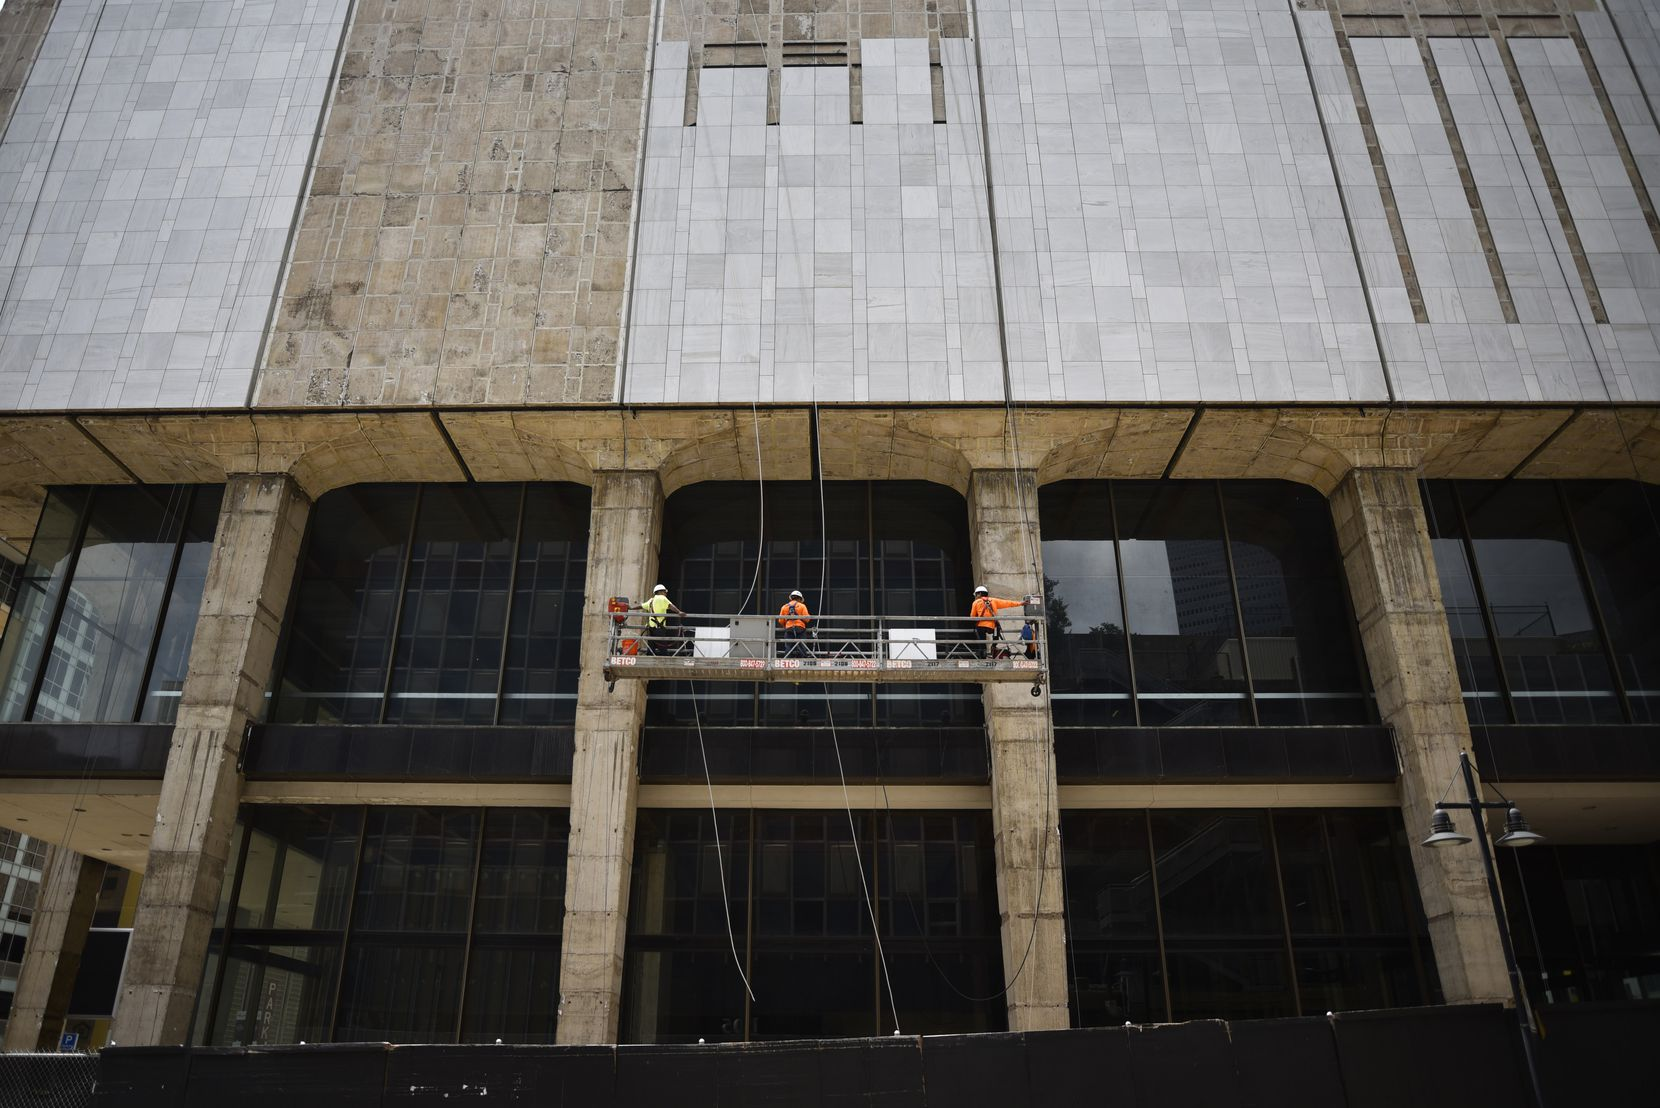 Construction workers are just starting to install the curved marble panels on the lower floors of the tower.